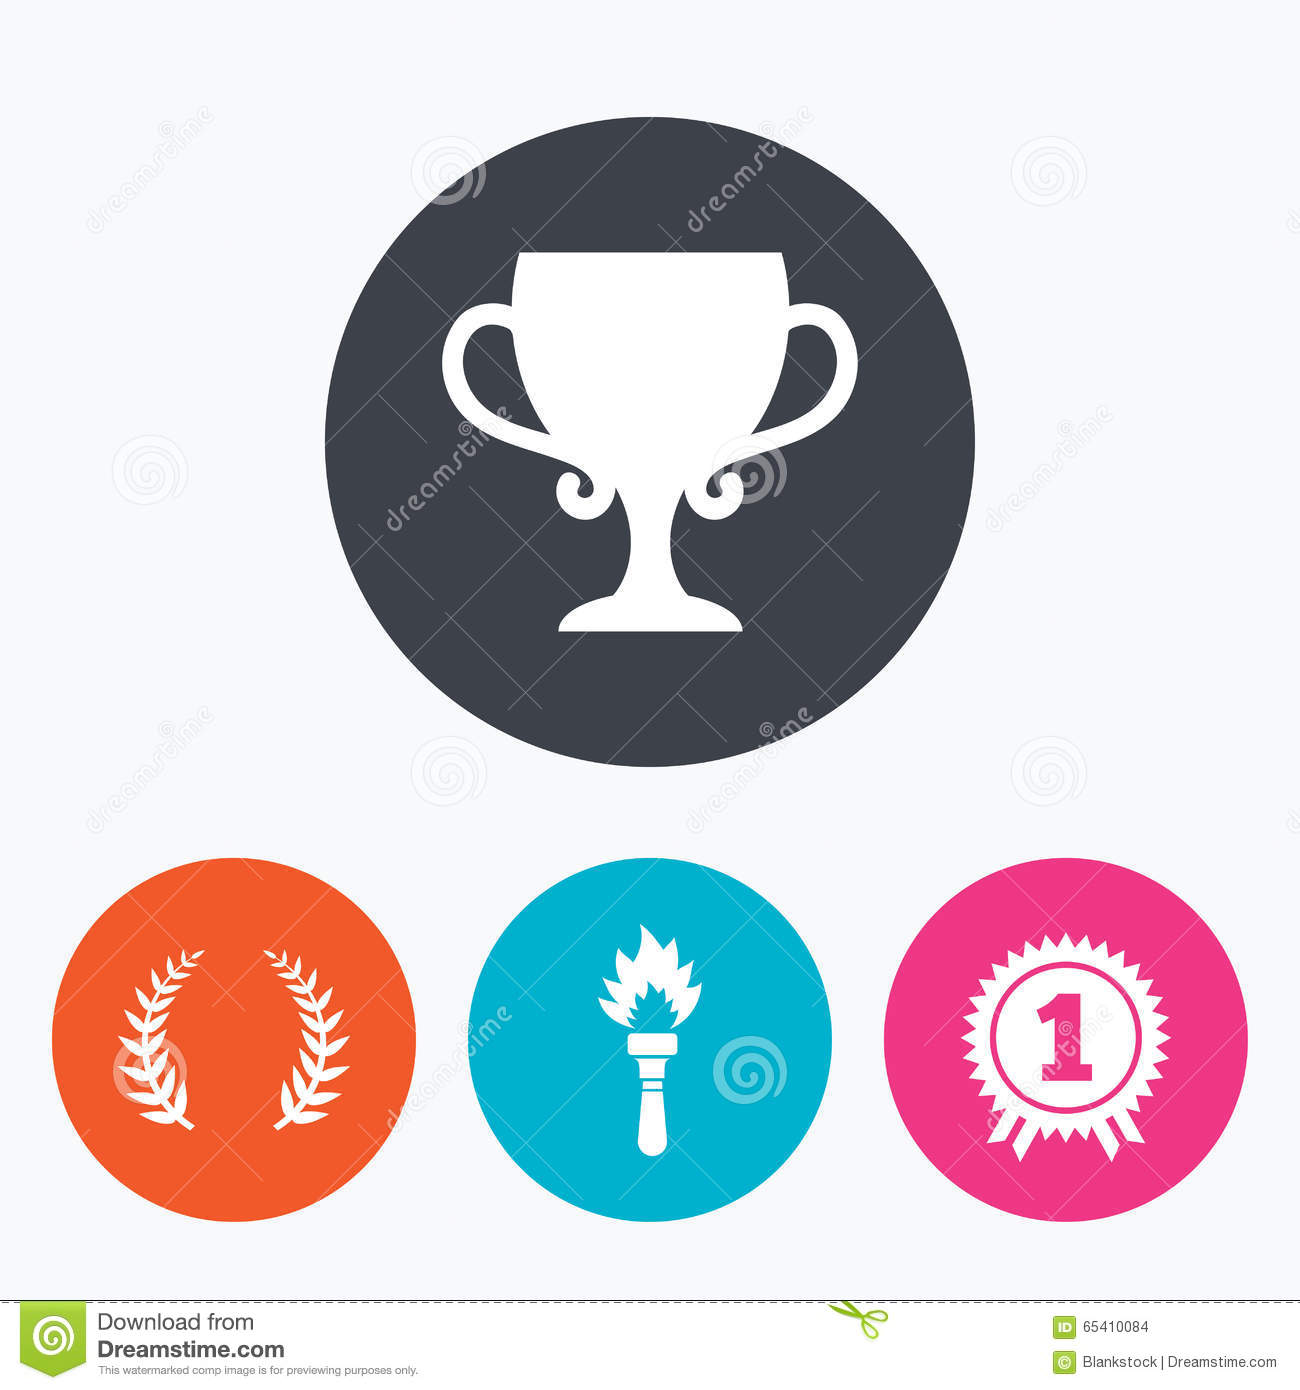 Prizes icon vector wi